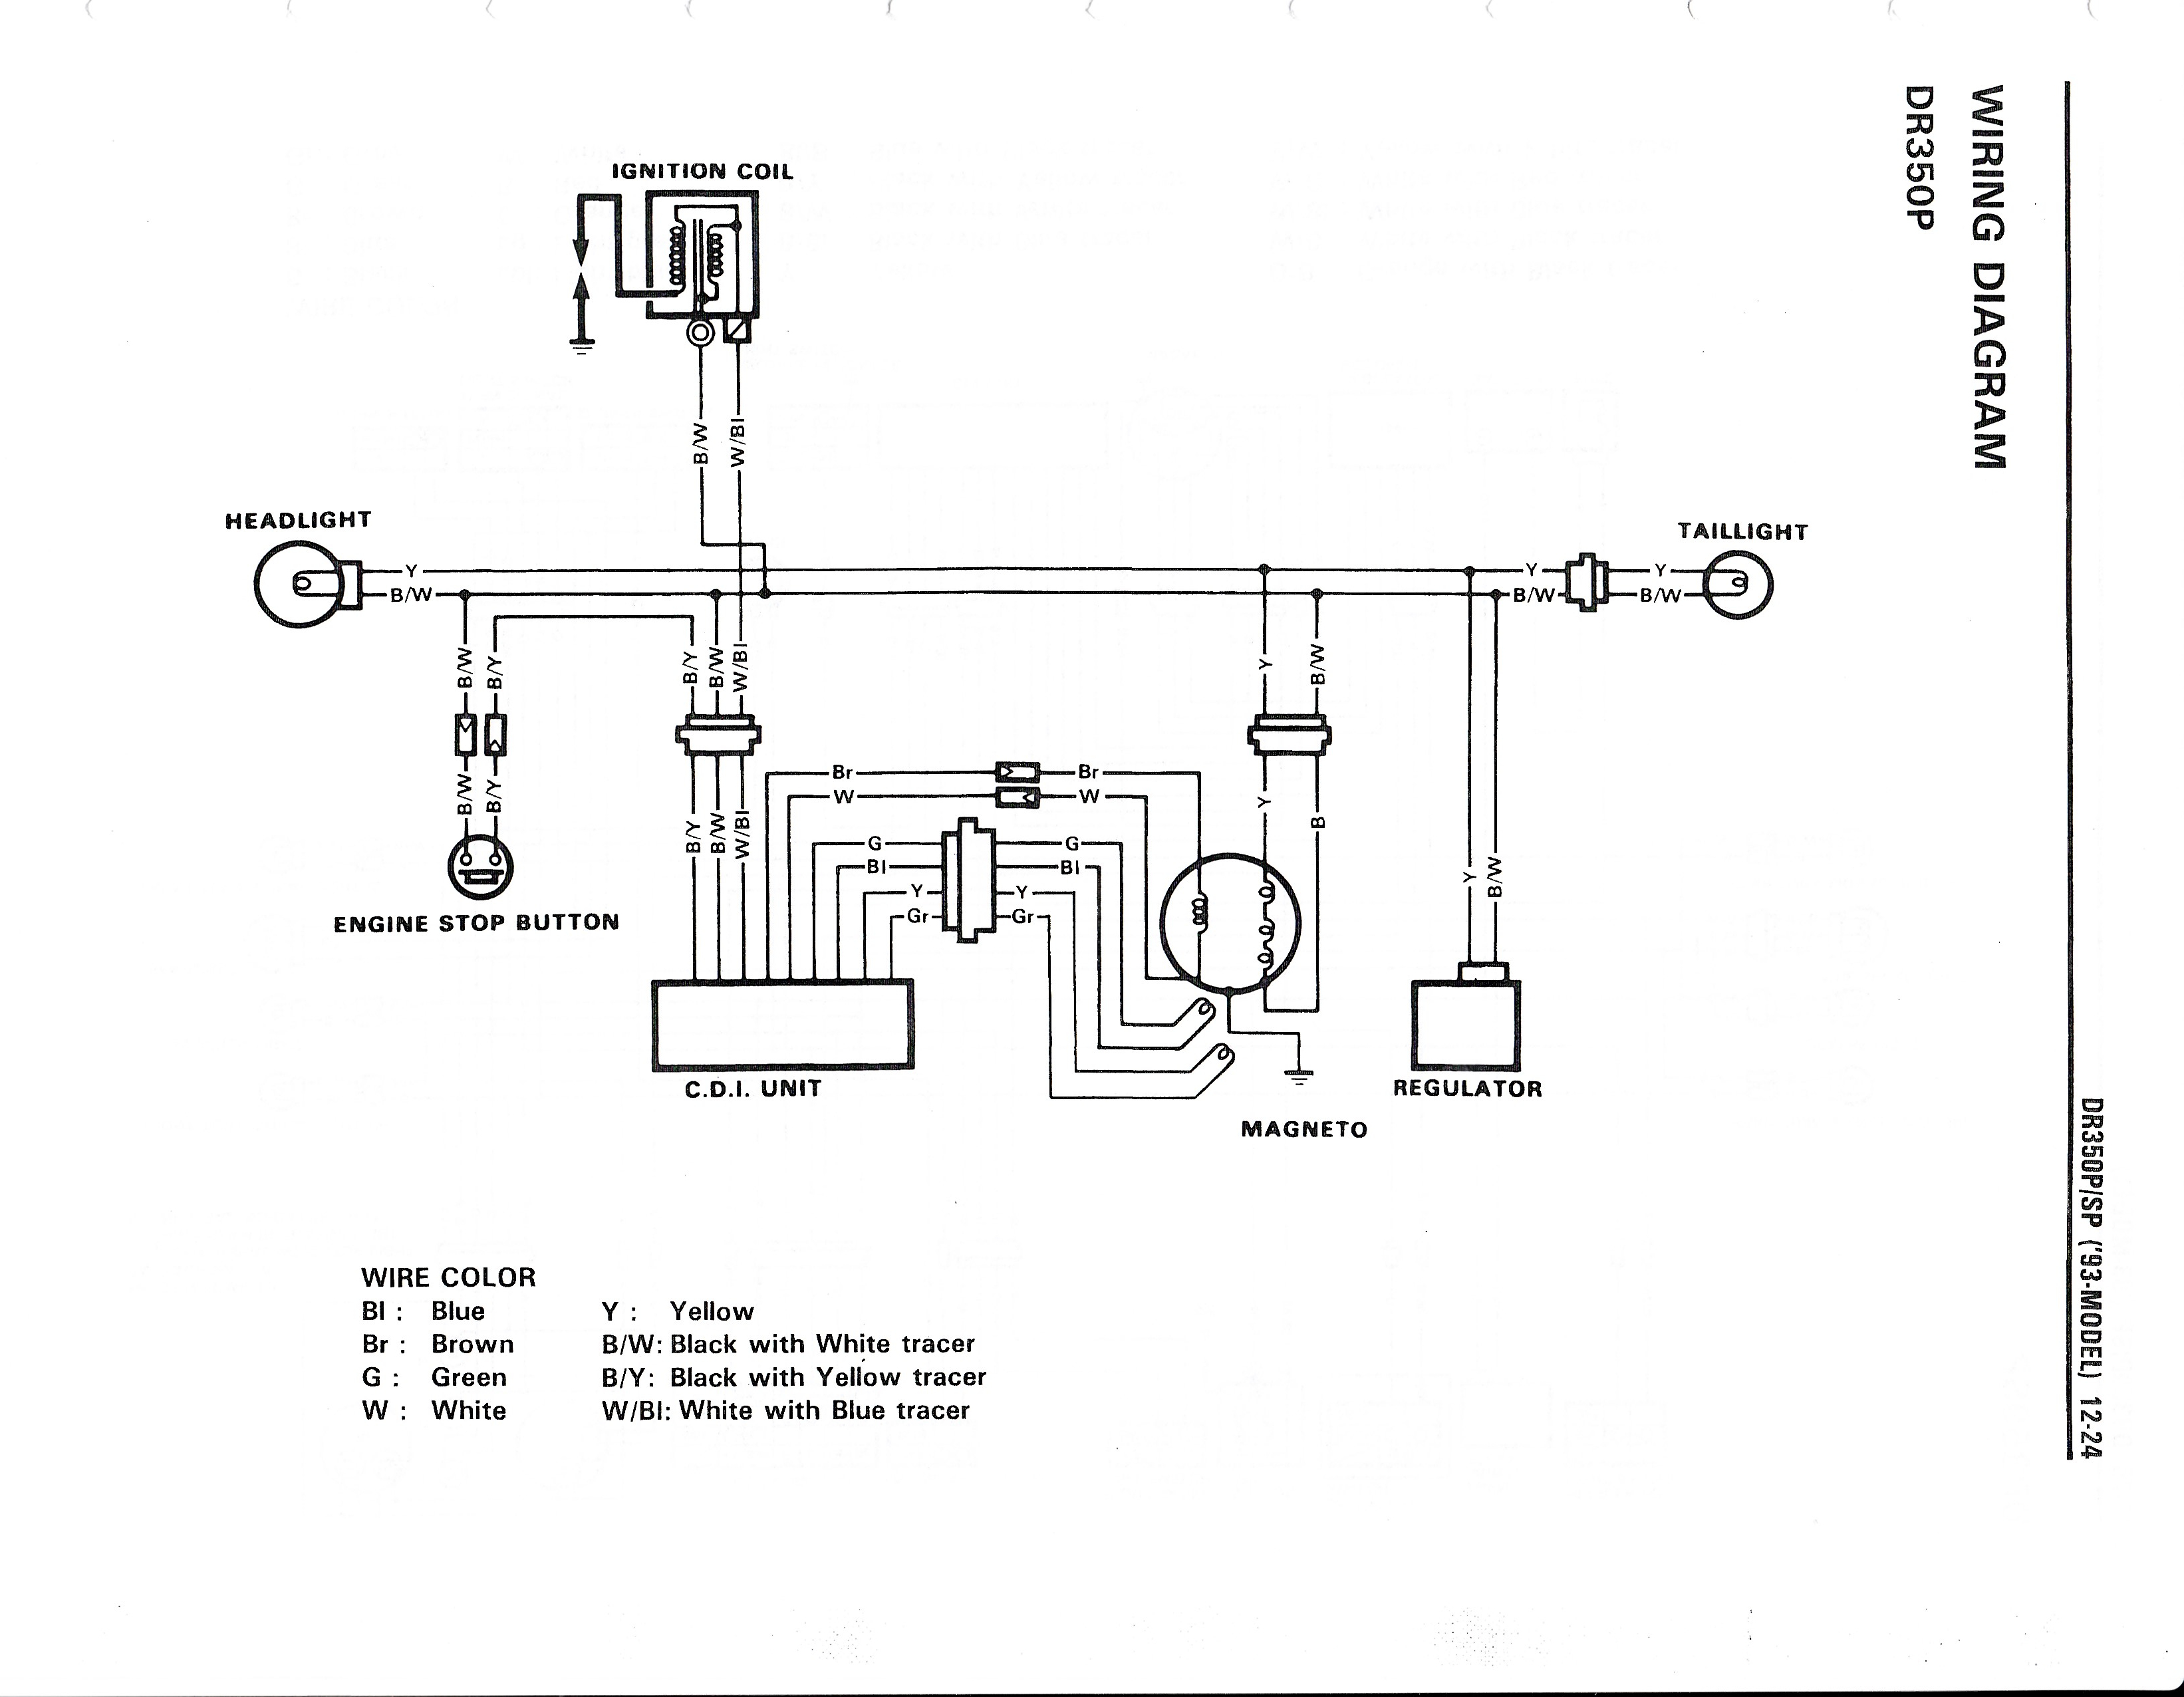 Wiring diagram for the DR350 (1993 and later models)